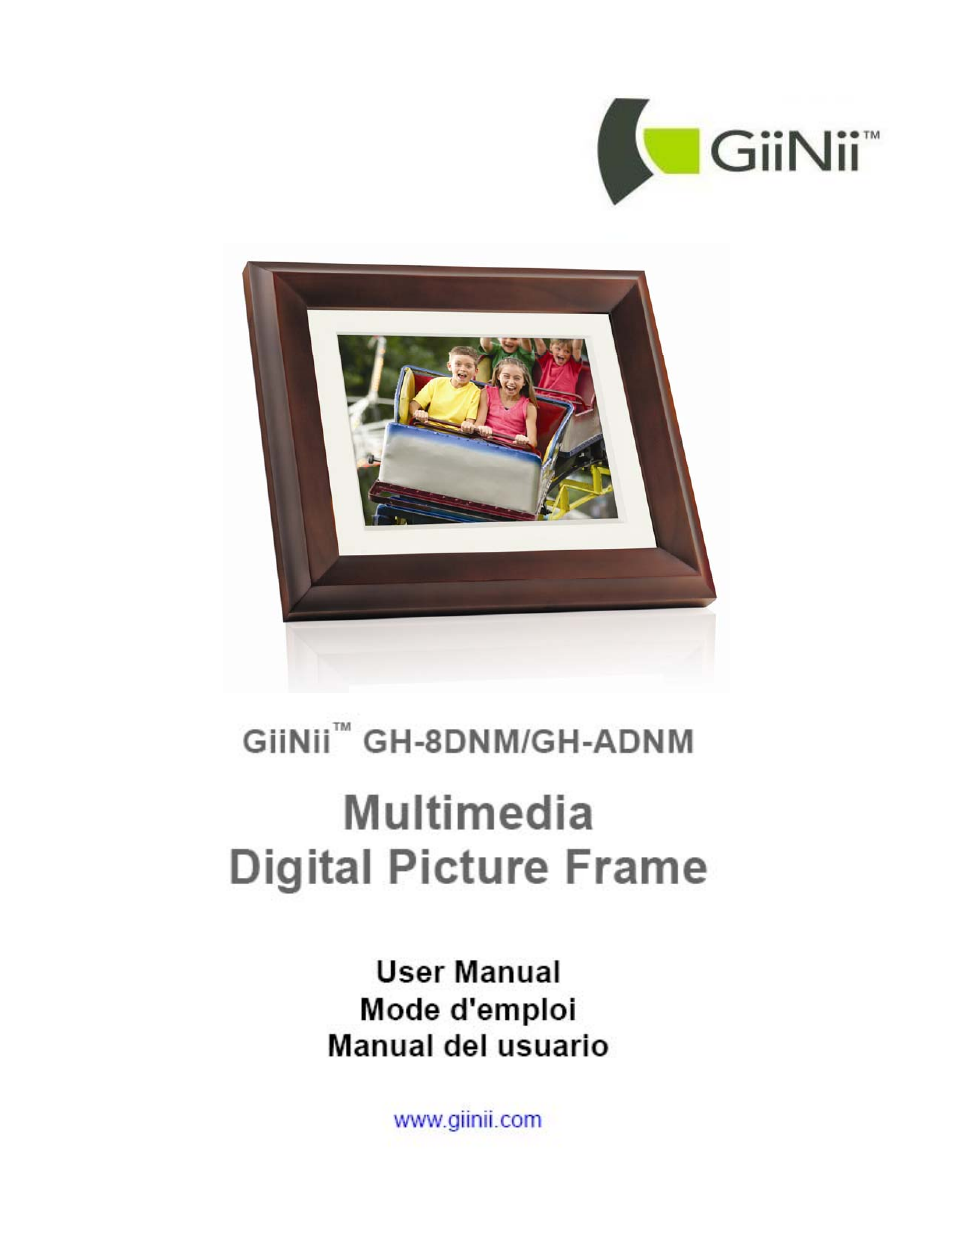 GiiNii GH-8DNM User Manual | 72 pages | Also for: GH-ADNM